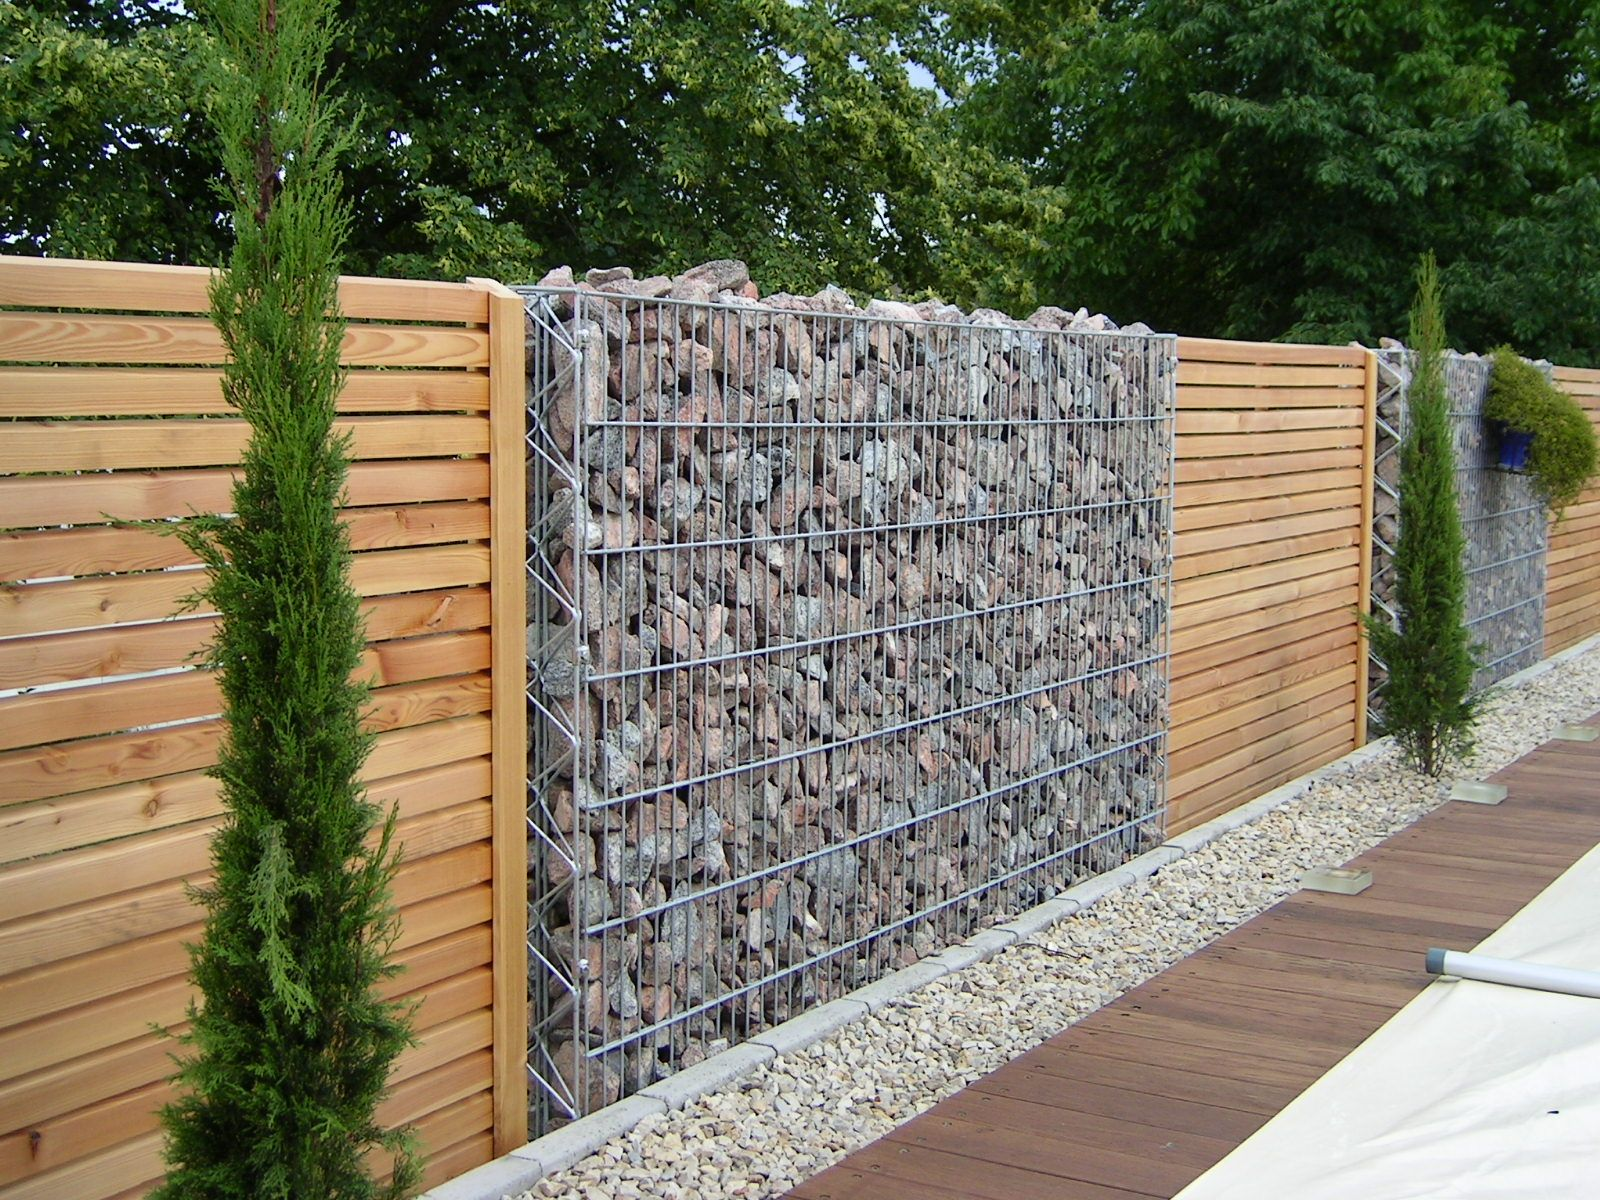 Cloture Jardin Bois Tressé fence idea | separation jardin, jardin contemporain, cloture